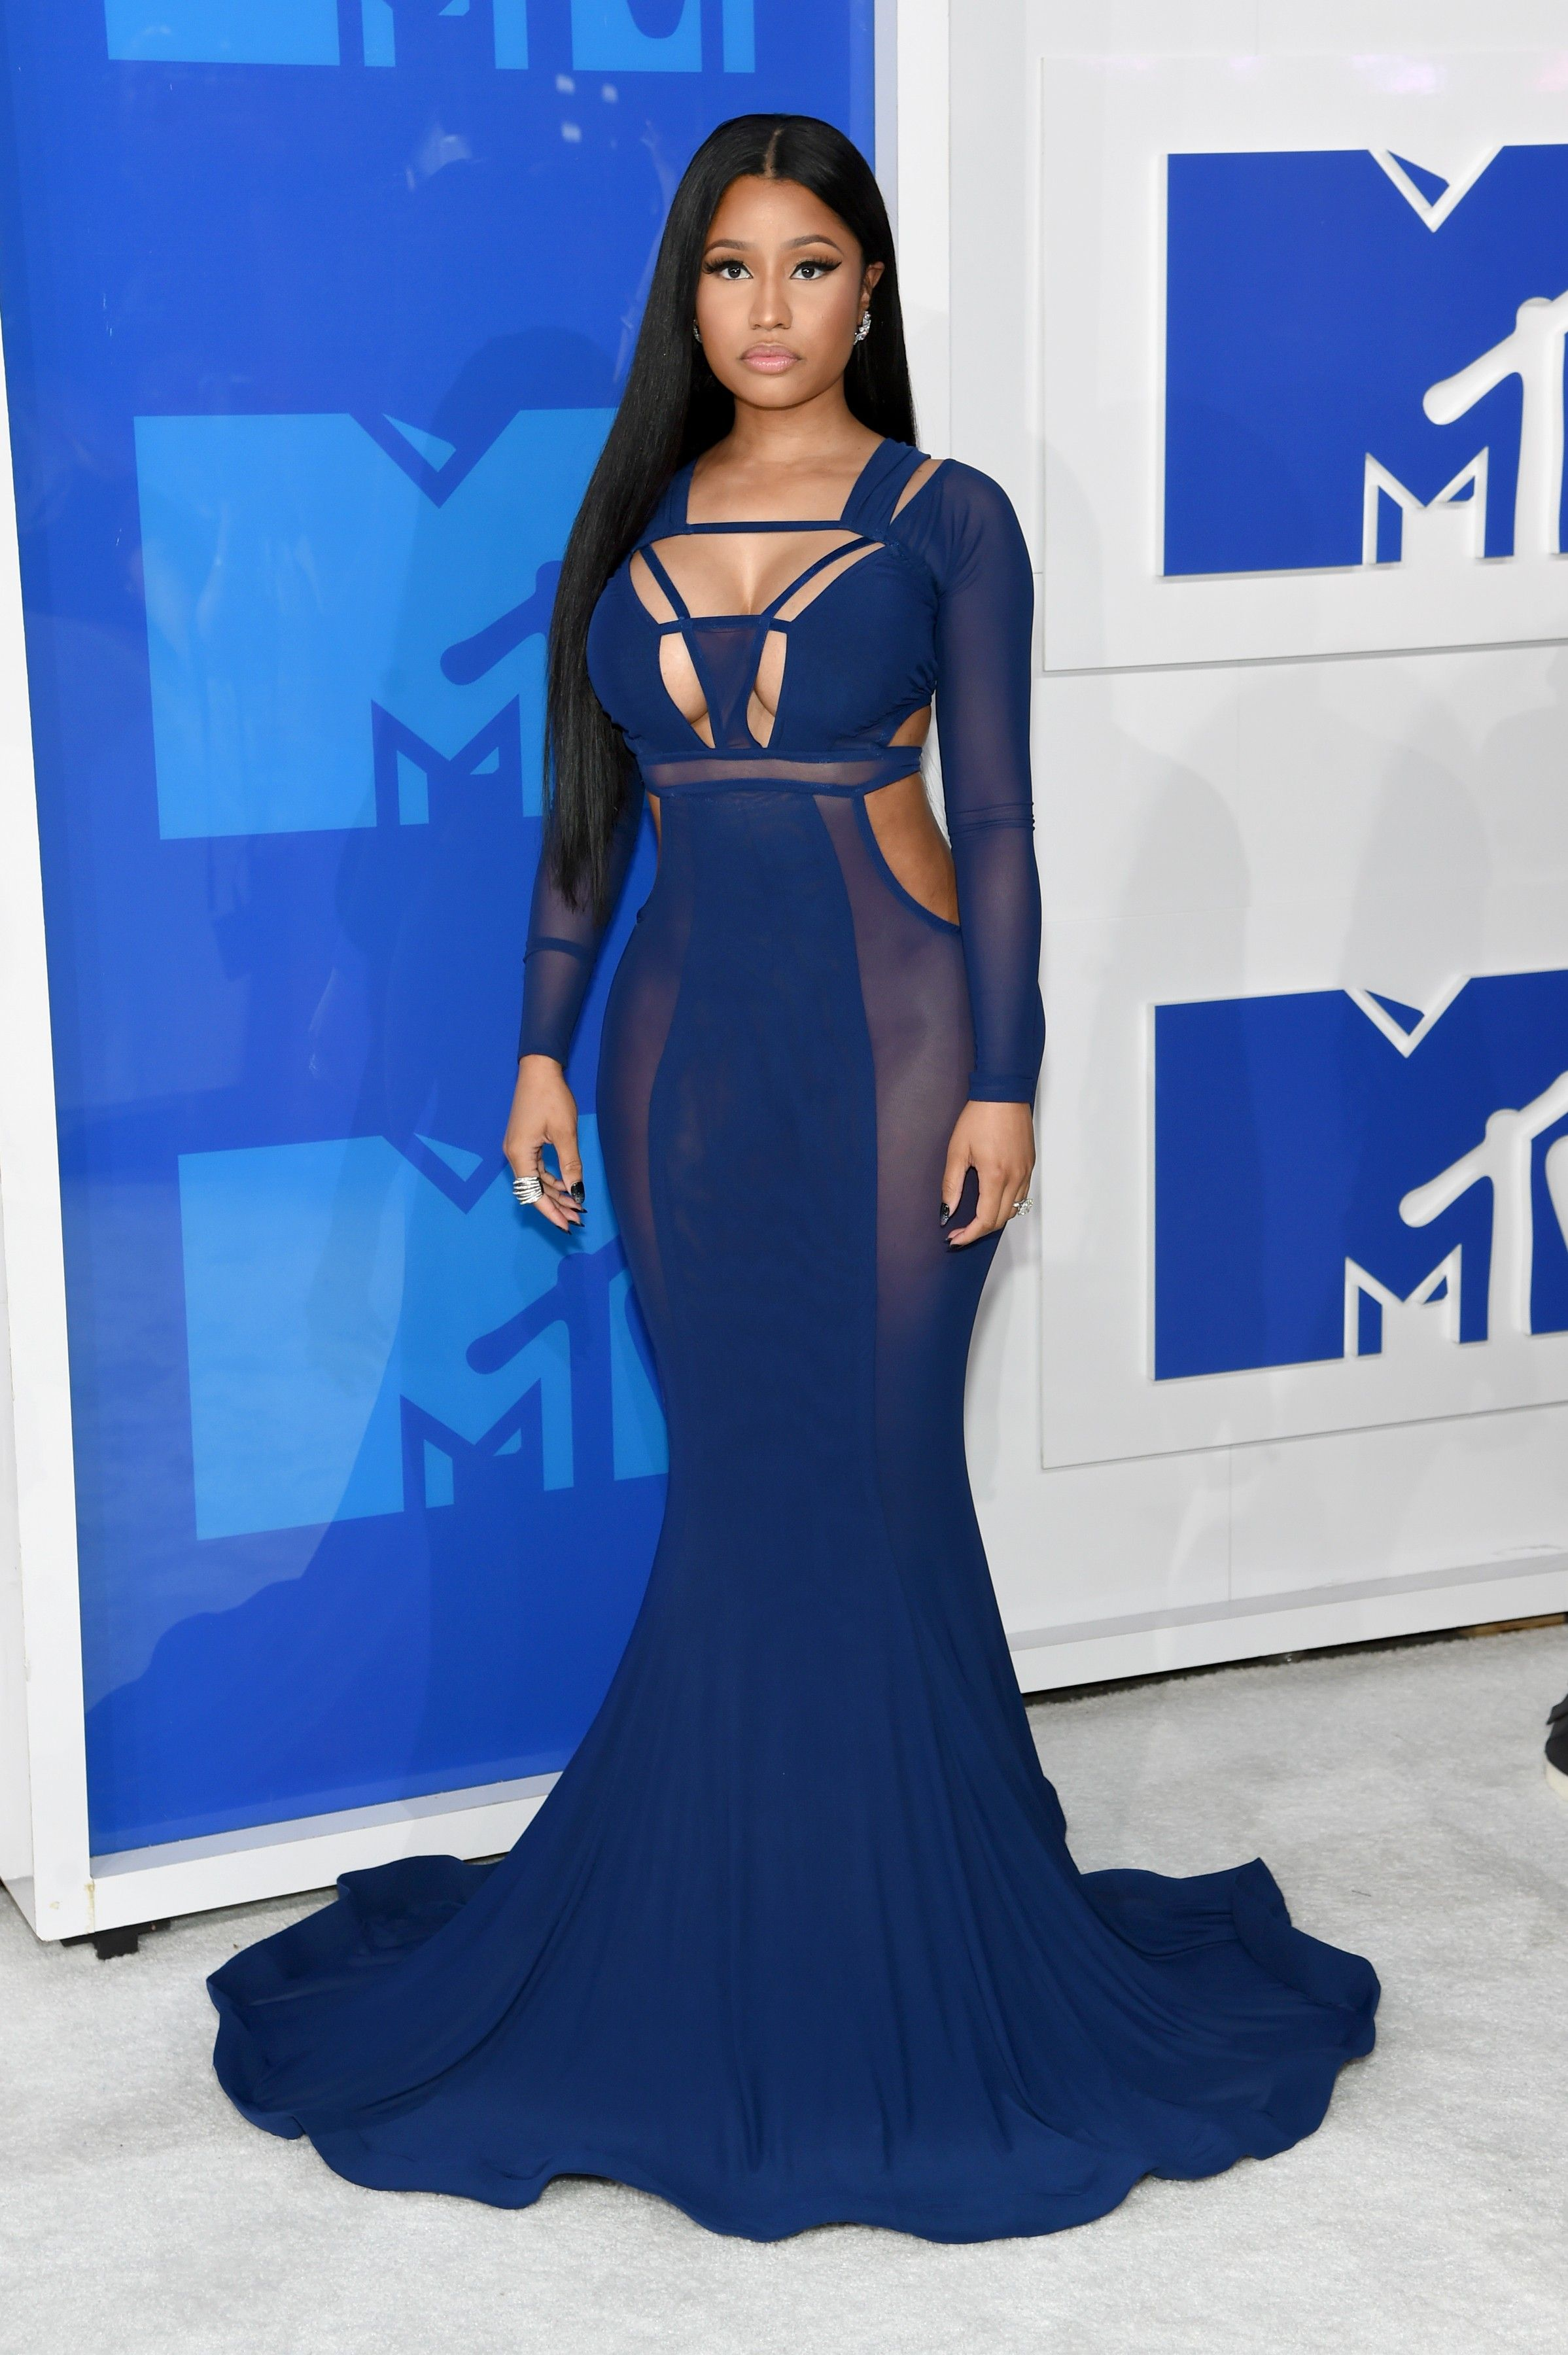 7dbc696be27 Nicki Minaj at the VMAs 2016 wearing a cobalt blue dress with cut outs and  Harry Kotlar diamond earrings and Le Vian diamond ring